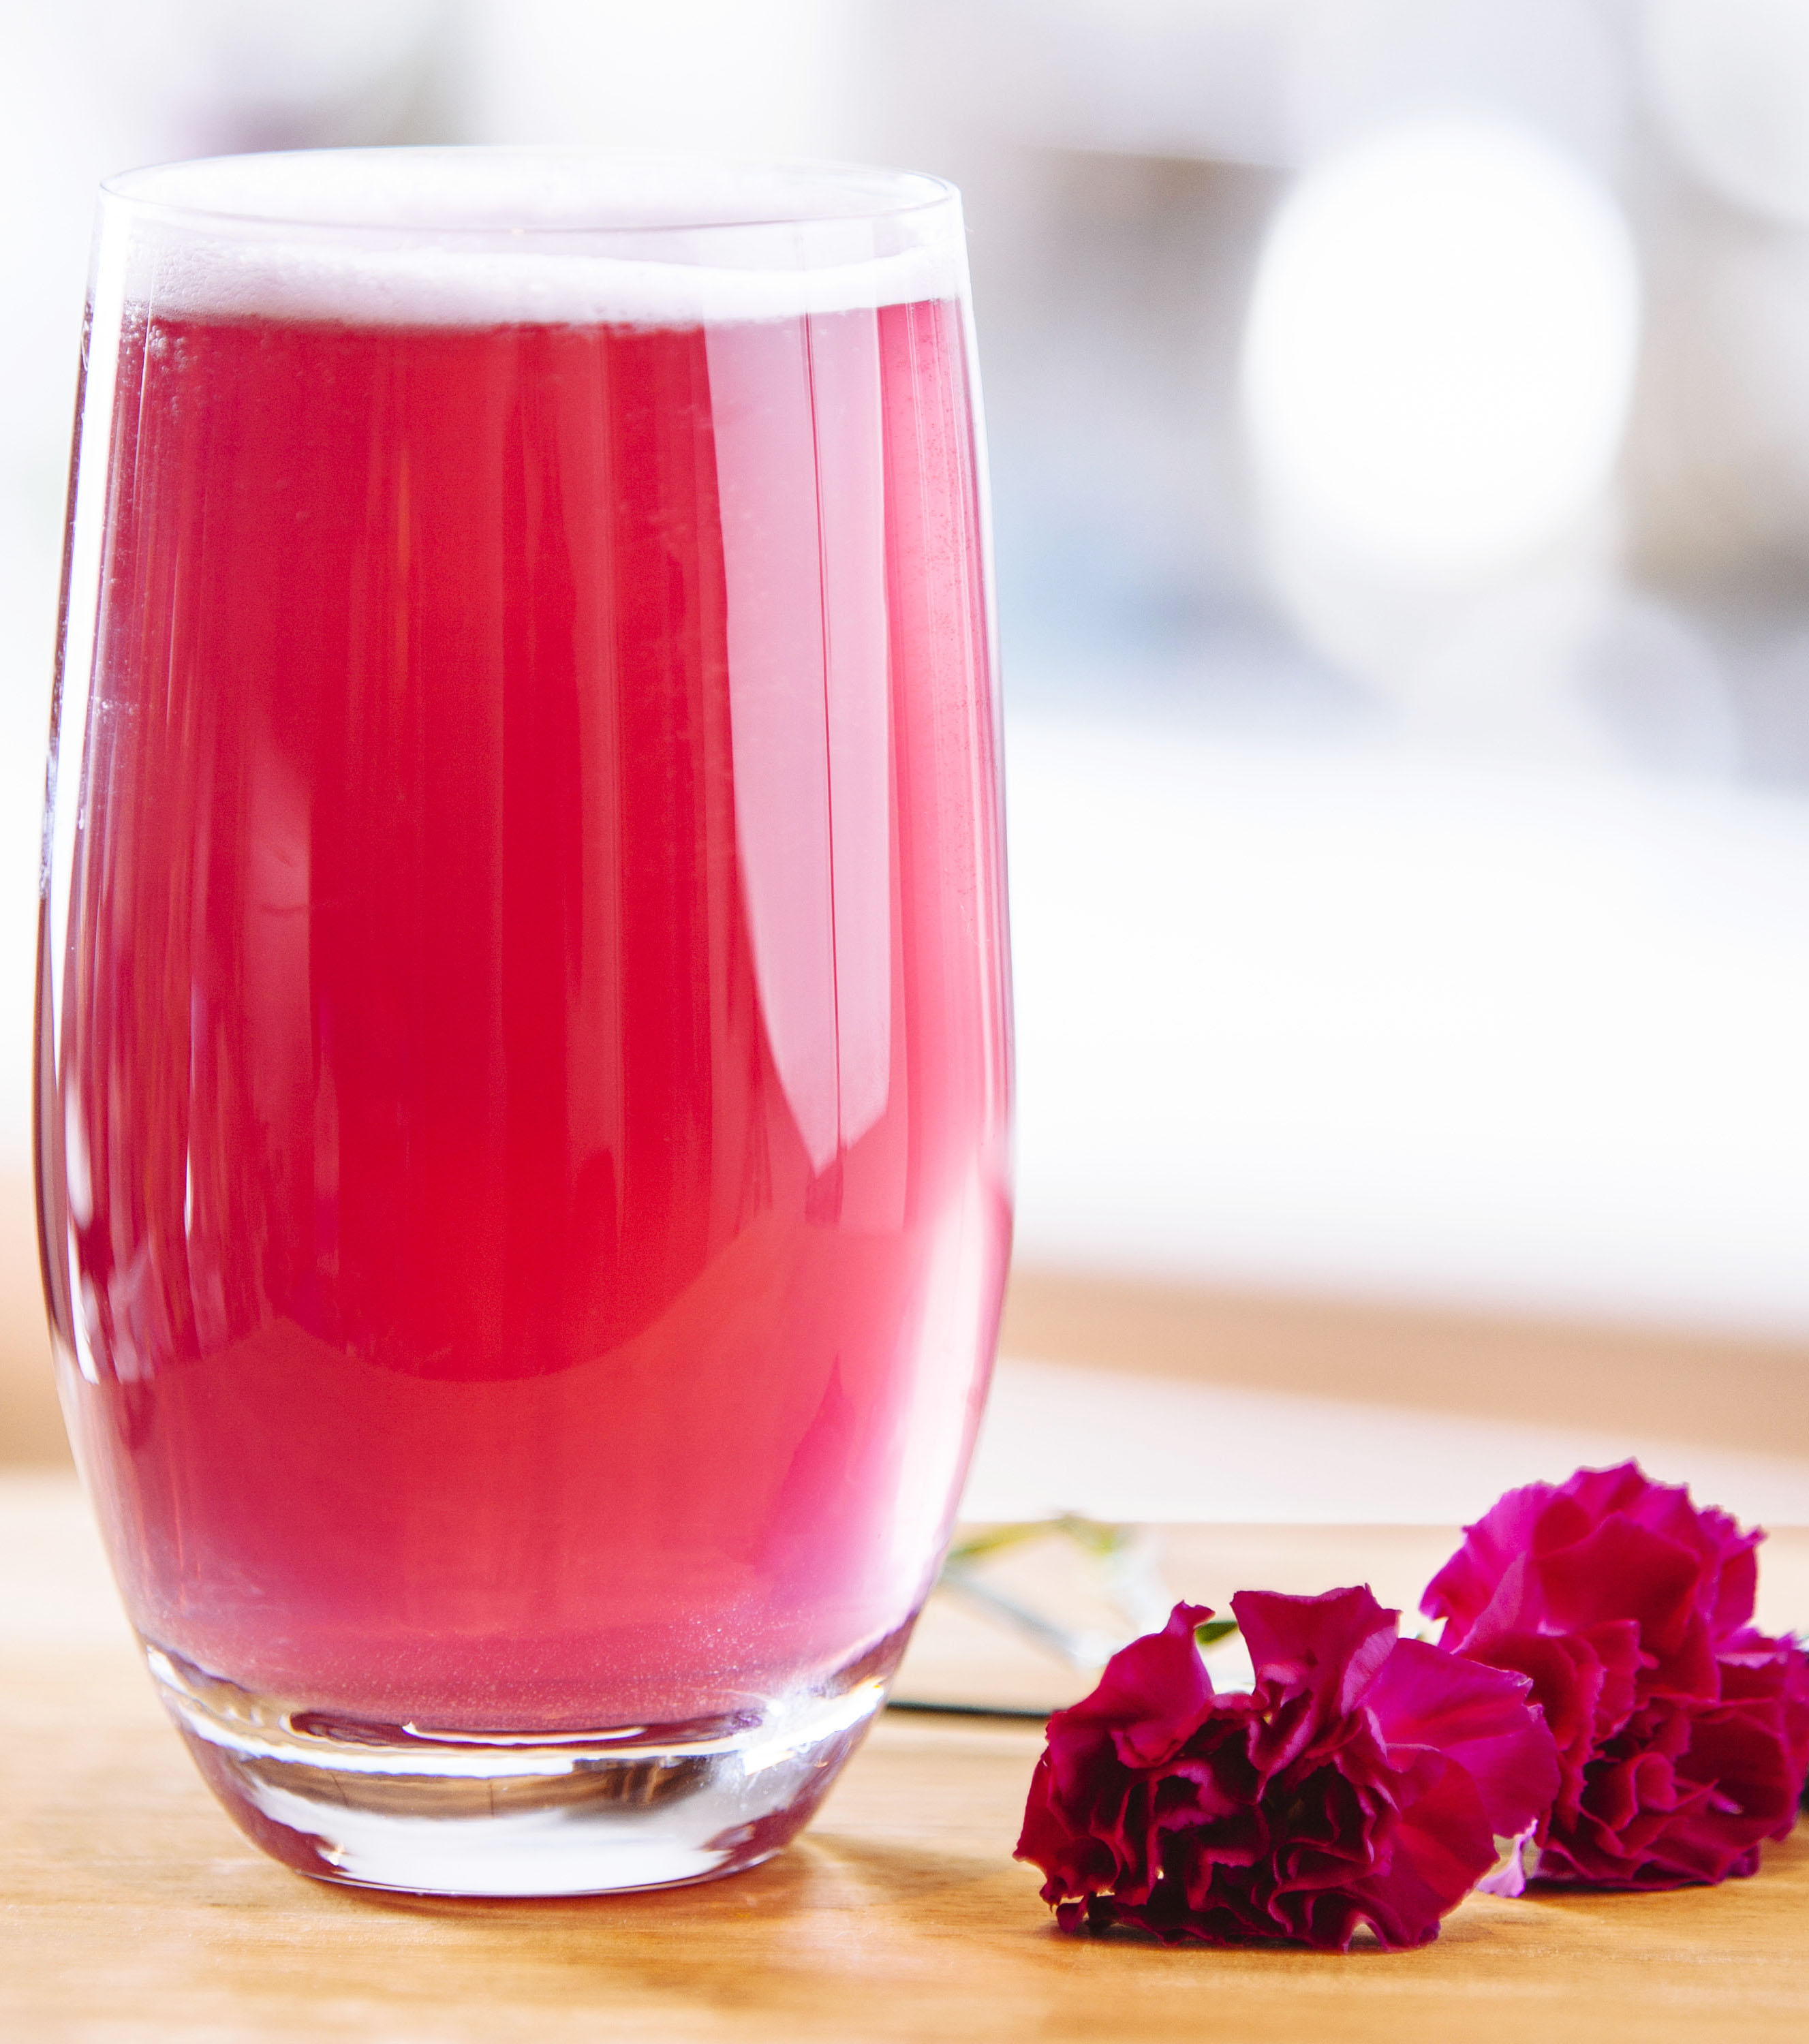 Berry Blast Water Flavouring